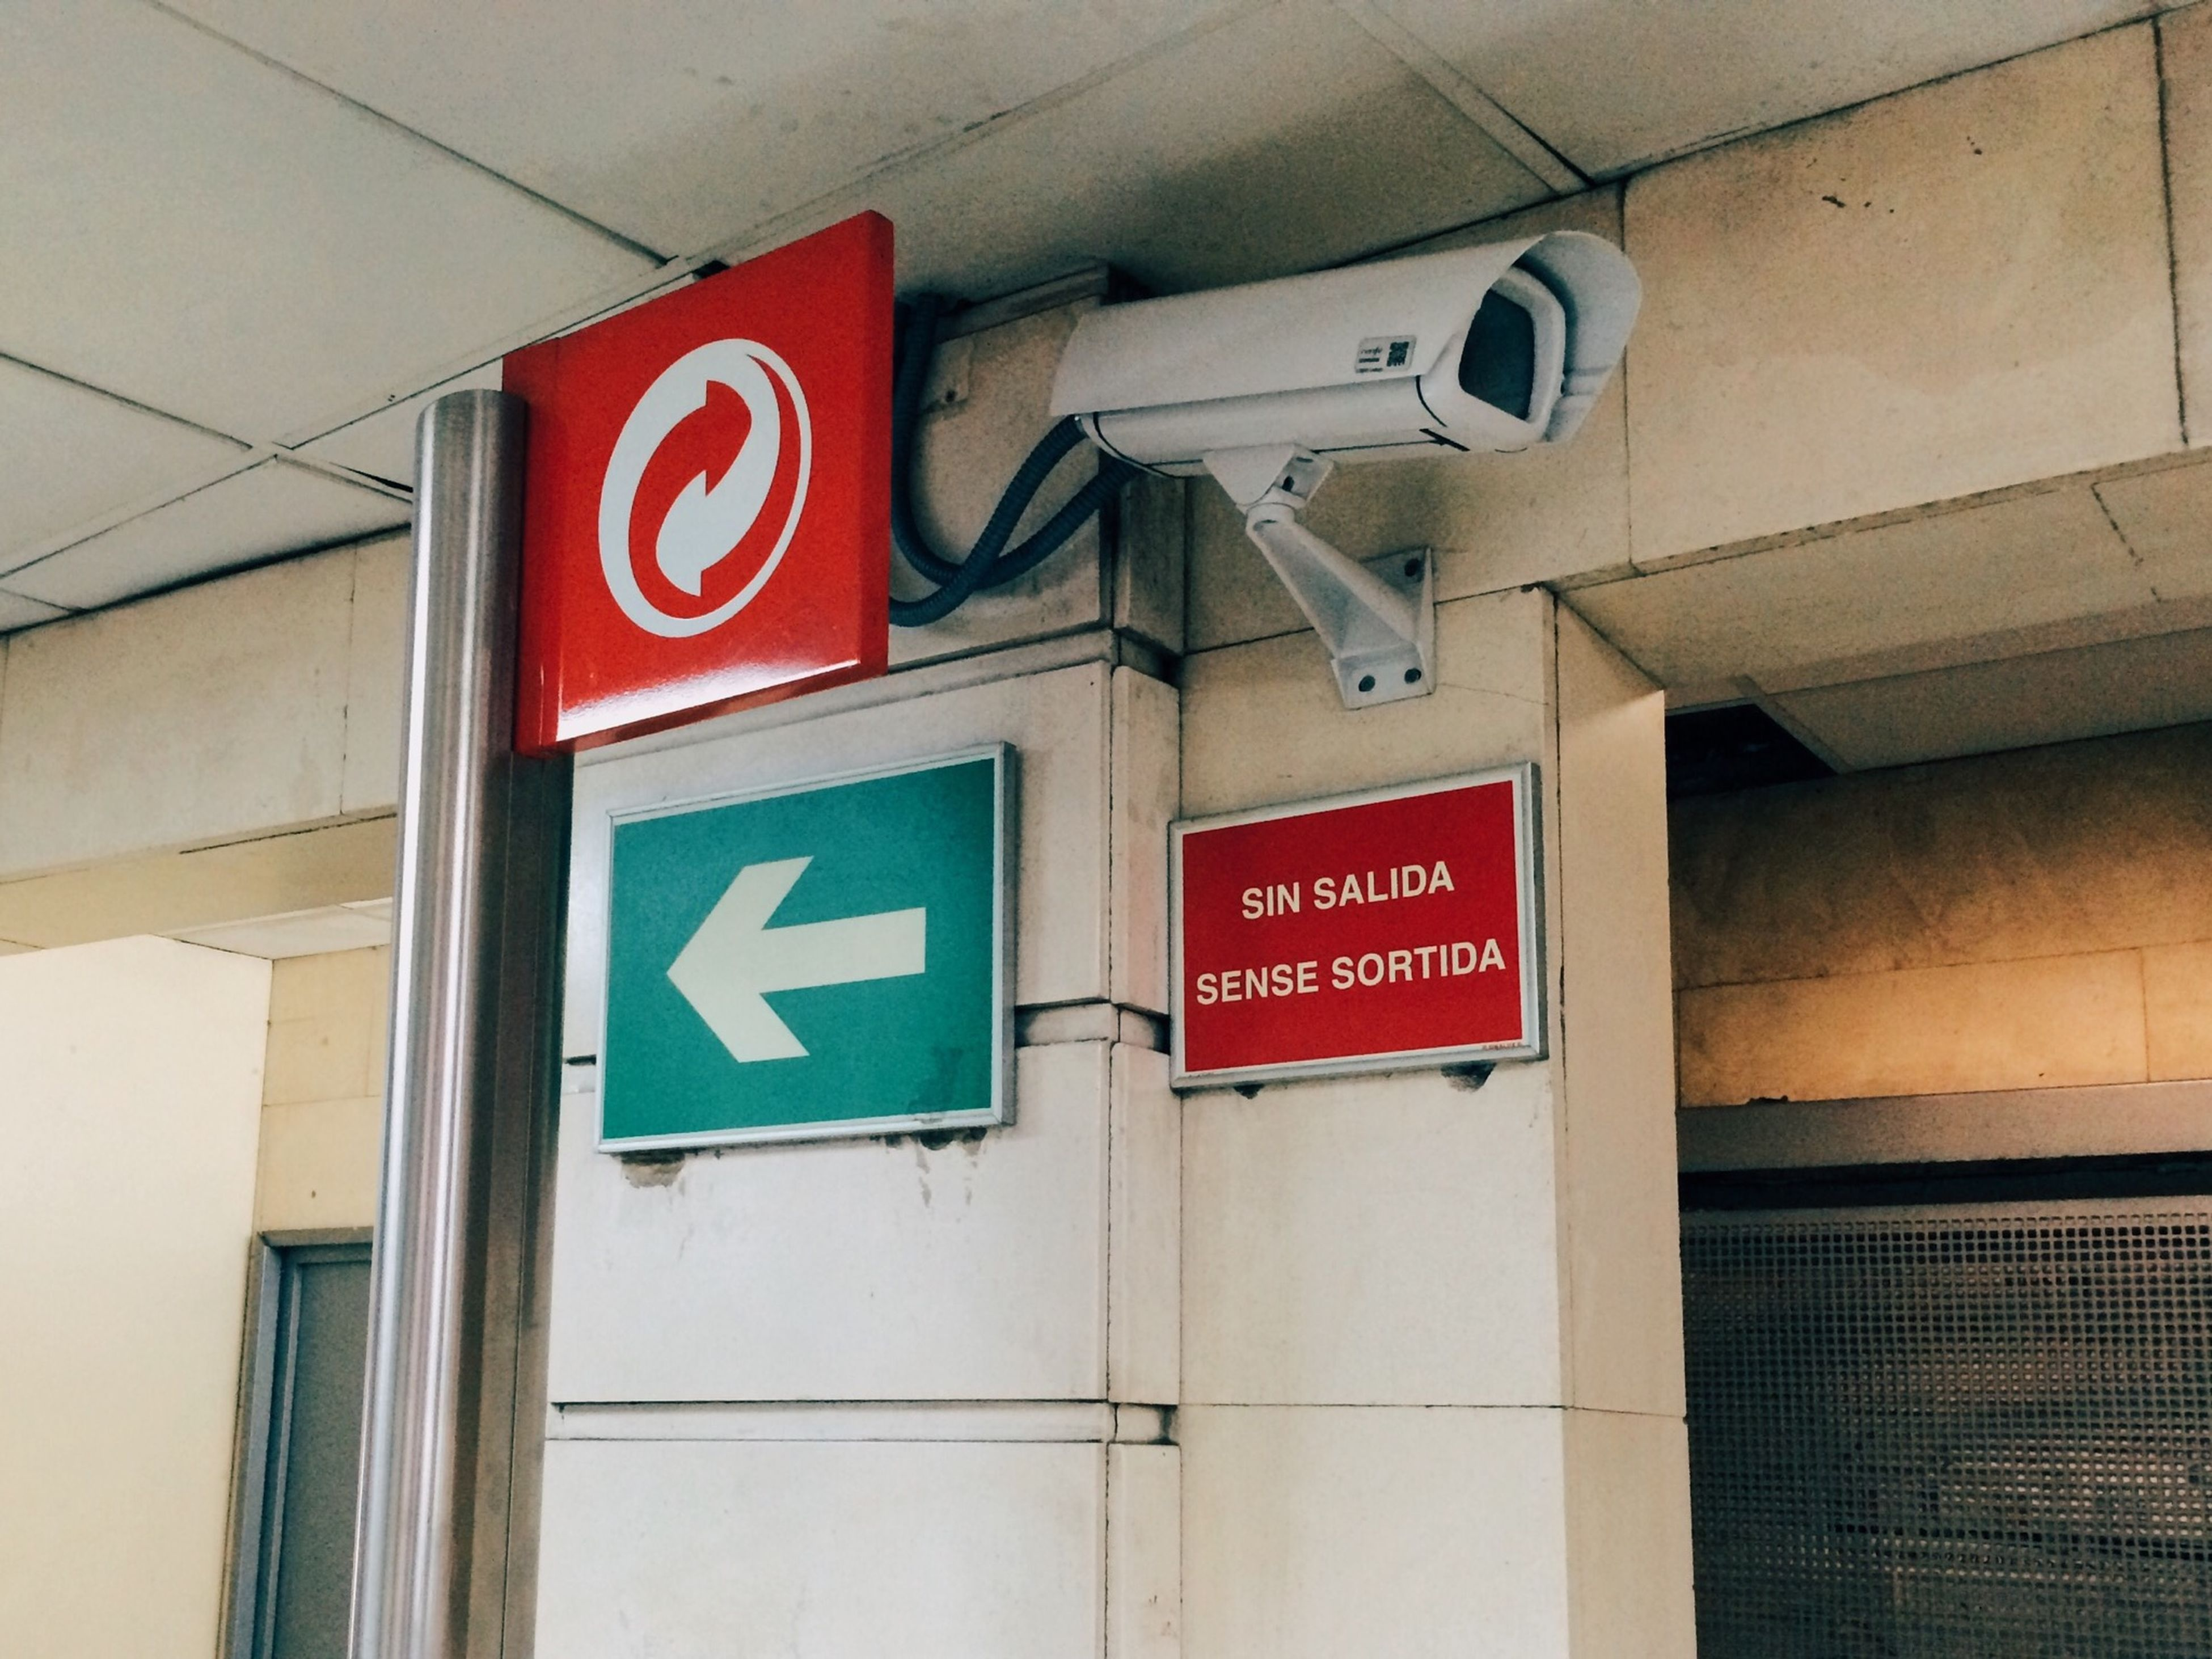 text, communication, western script, guidance, information sign, sign, architecture, information, built structure, building exterior, directional sign, non-western script, low angle view, road sign, capital letter, arrow symbol, transportation, direction, red, warning sign